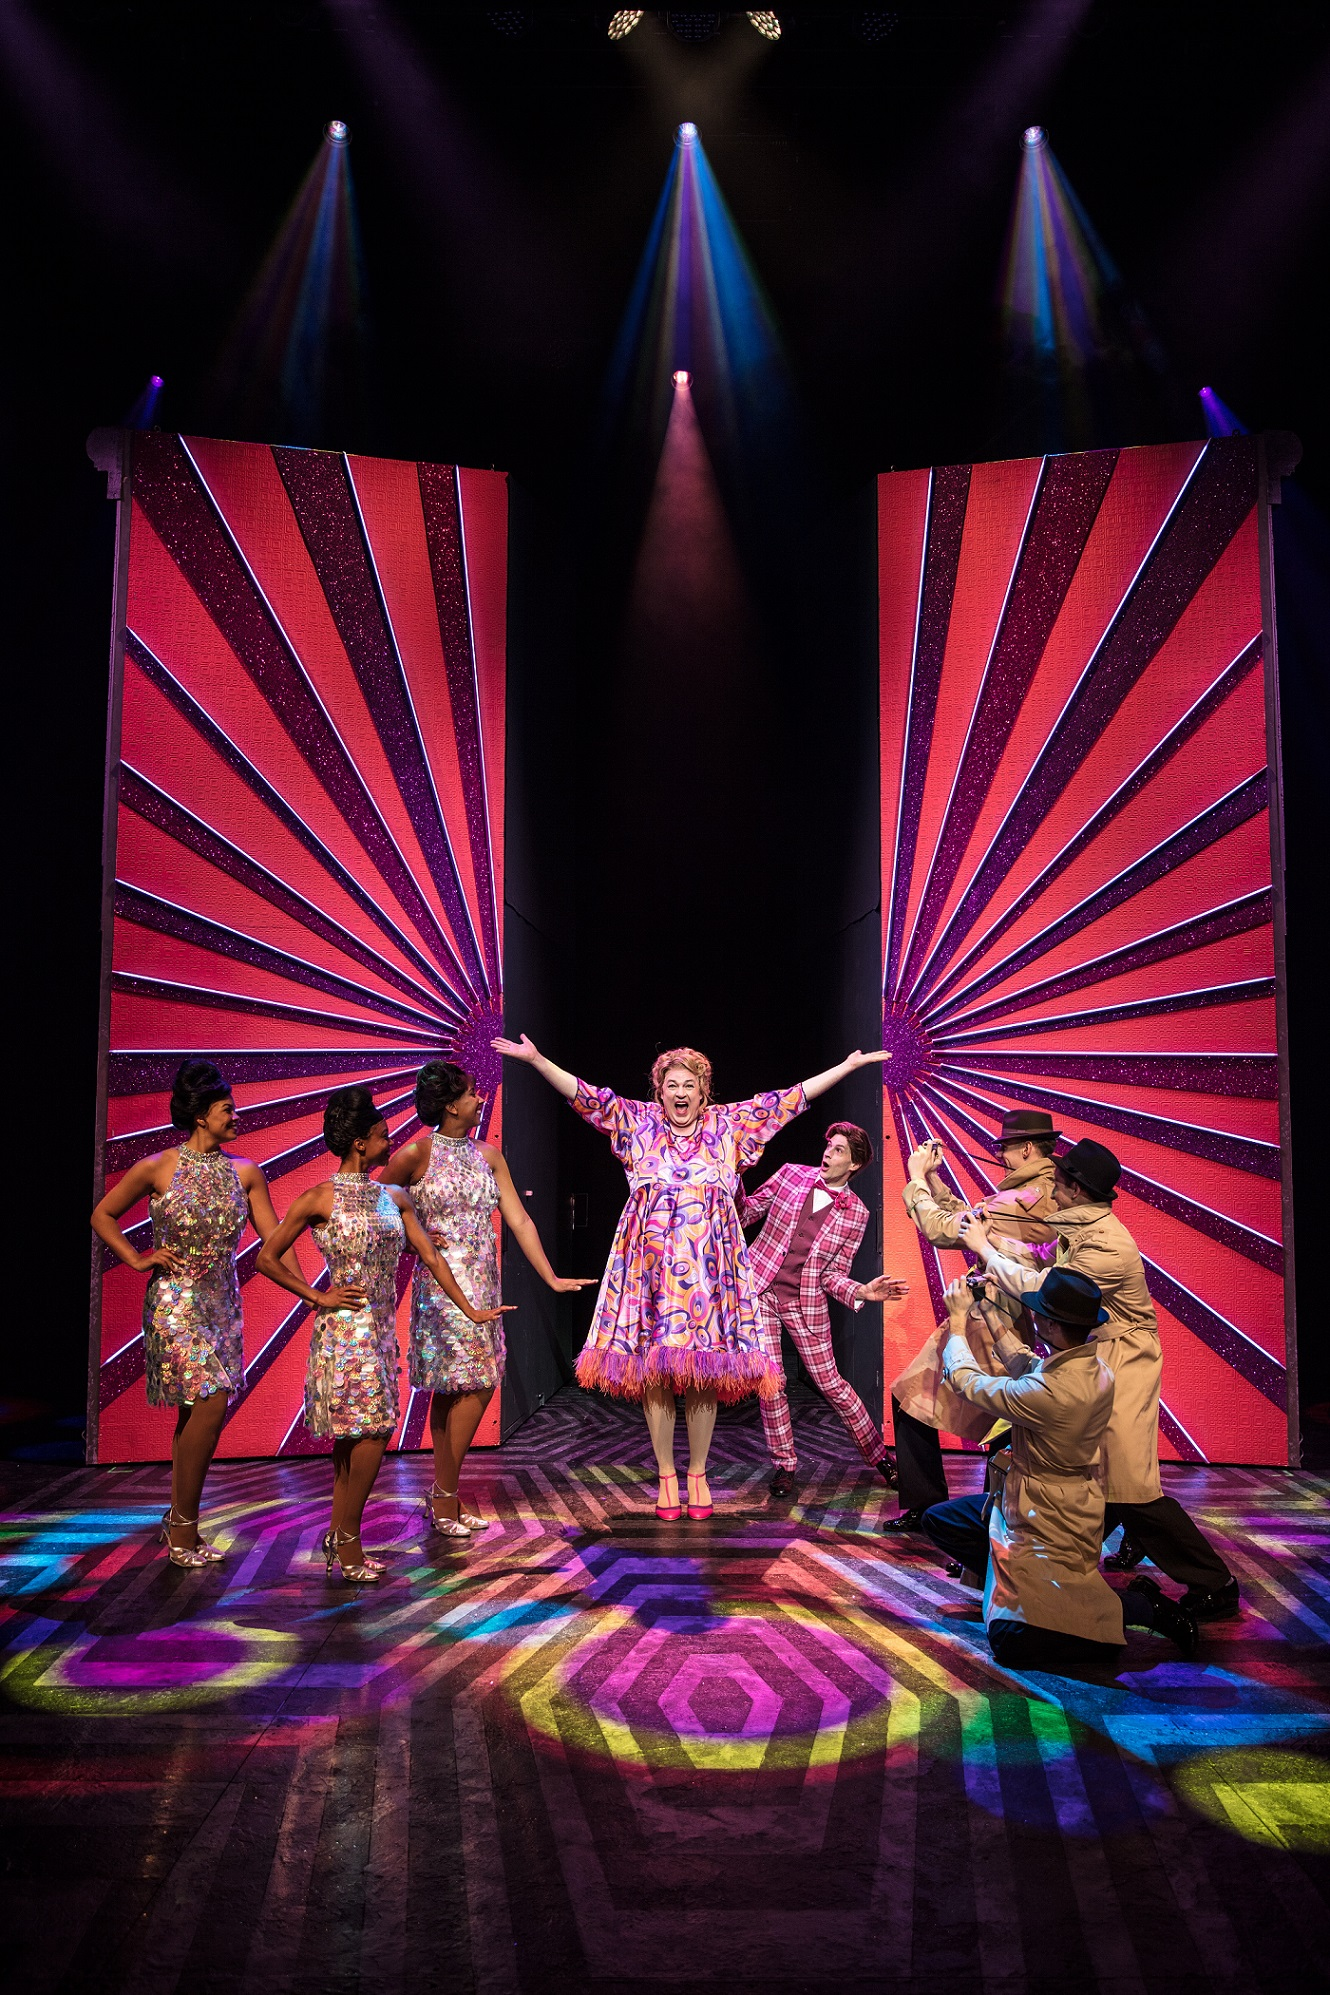 Matt-Rixon-and-Graham-McDuff-in-Welcome-to-the-60s-in-2017-Hairspray-UK-Tour.-Photo-by-Darren-Bell.jpg